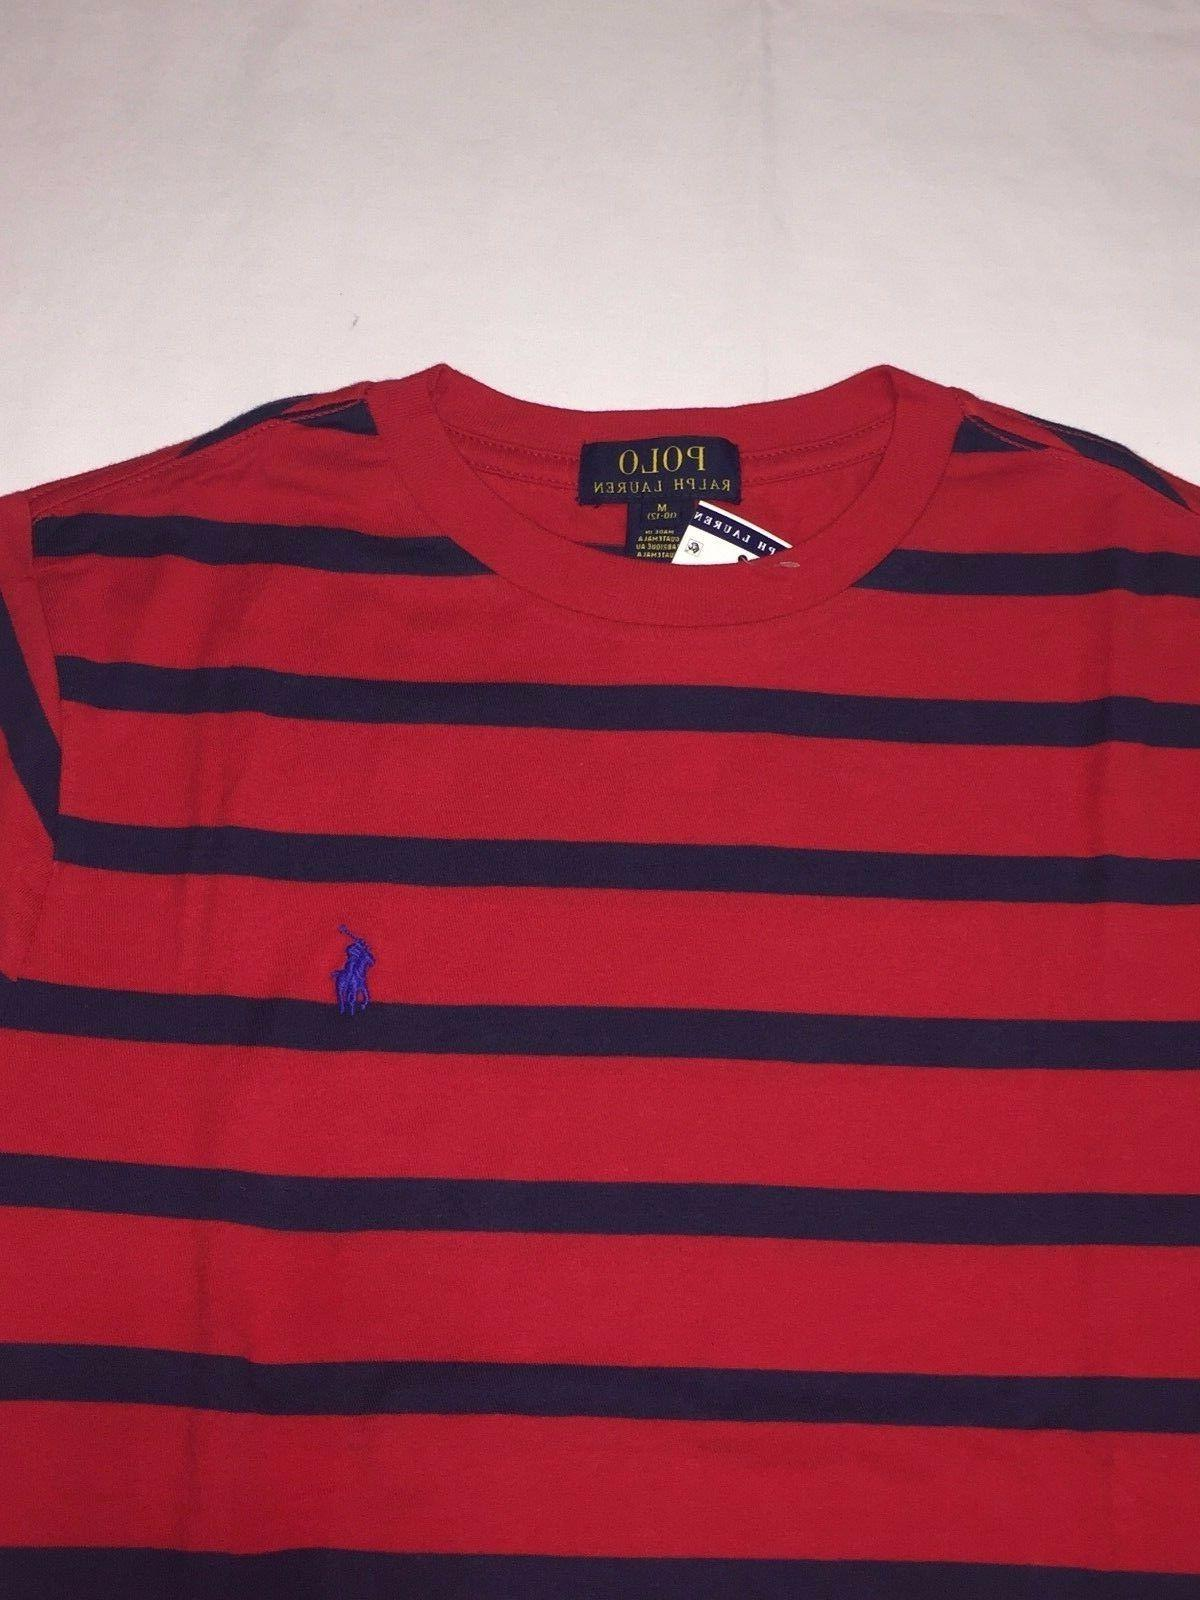 NWT,POLO RALPH LAUREN YOUTH T.SHIRTS-RED /